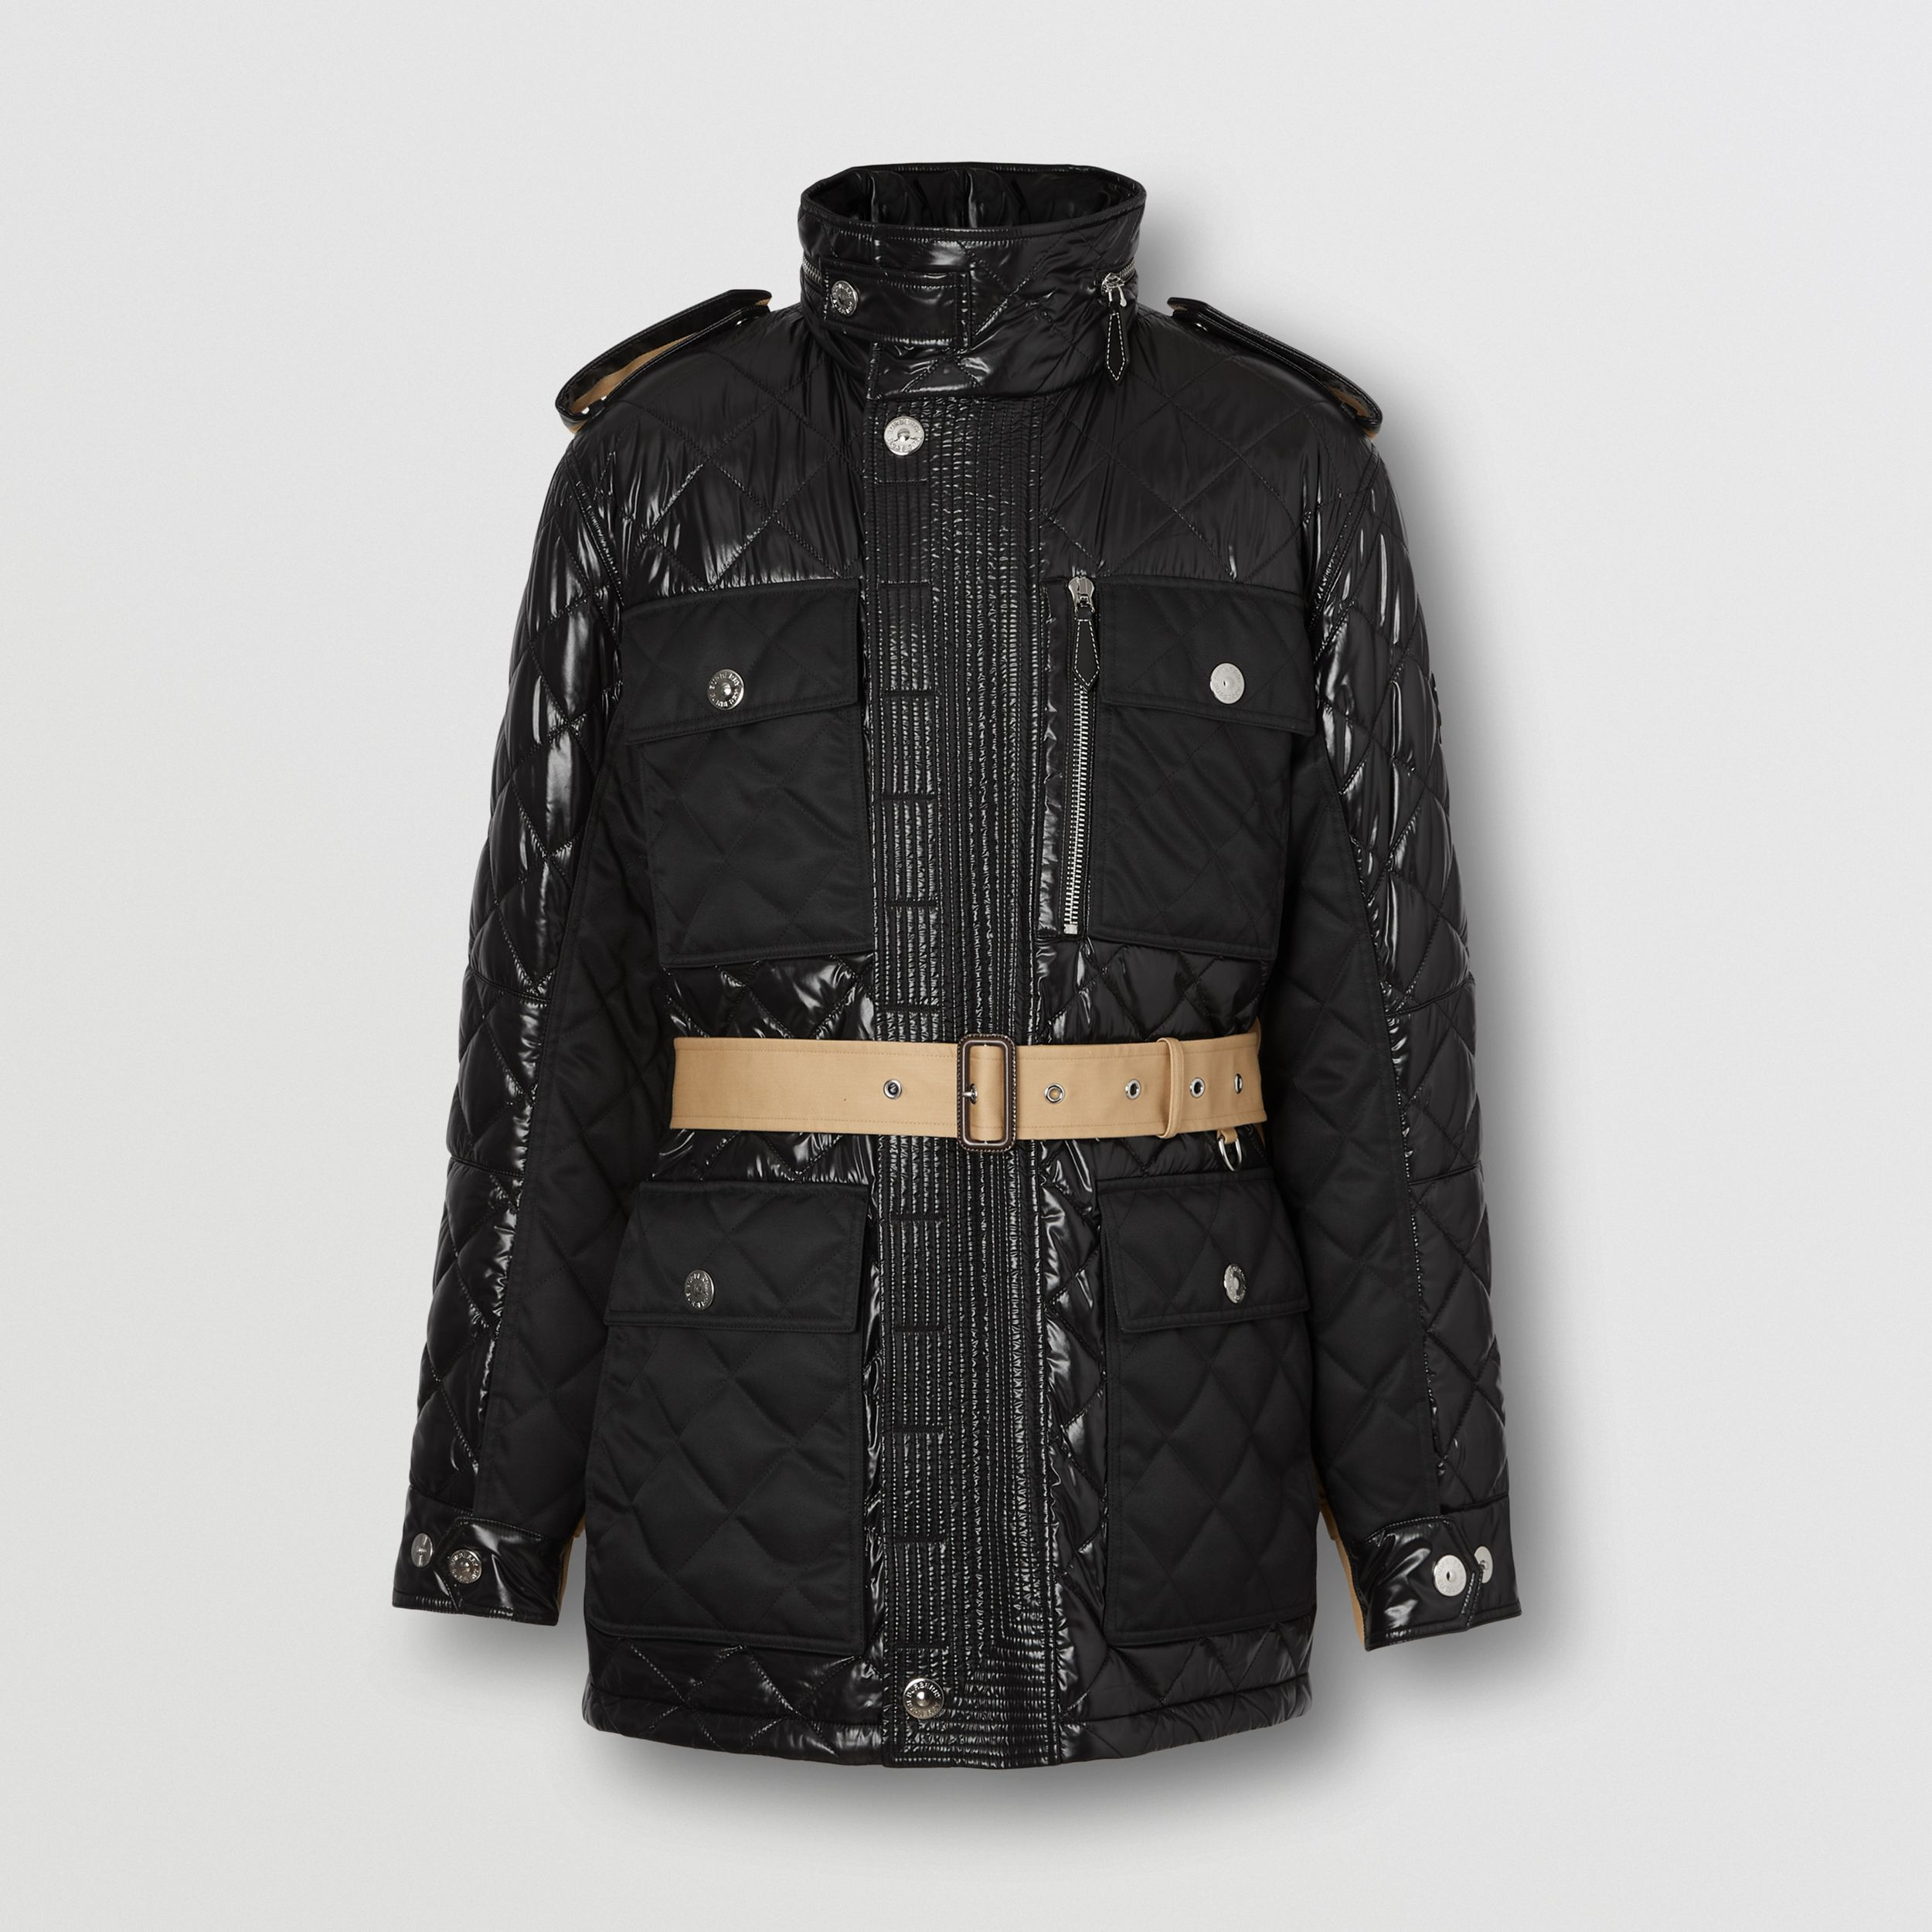 Packaway Hood Quilted Nylon and Cotton Field Jacket in Black | Burberry - 4